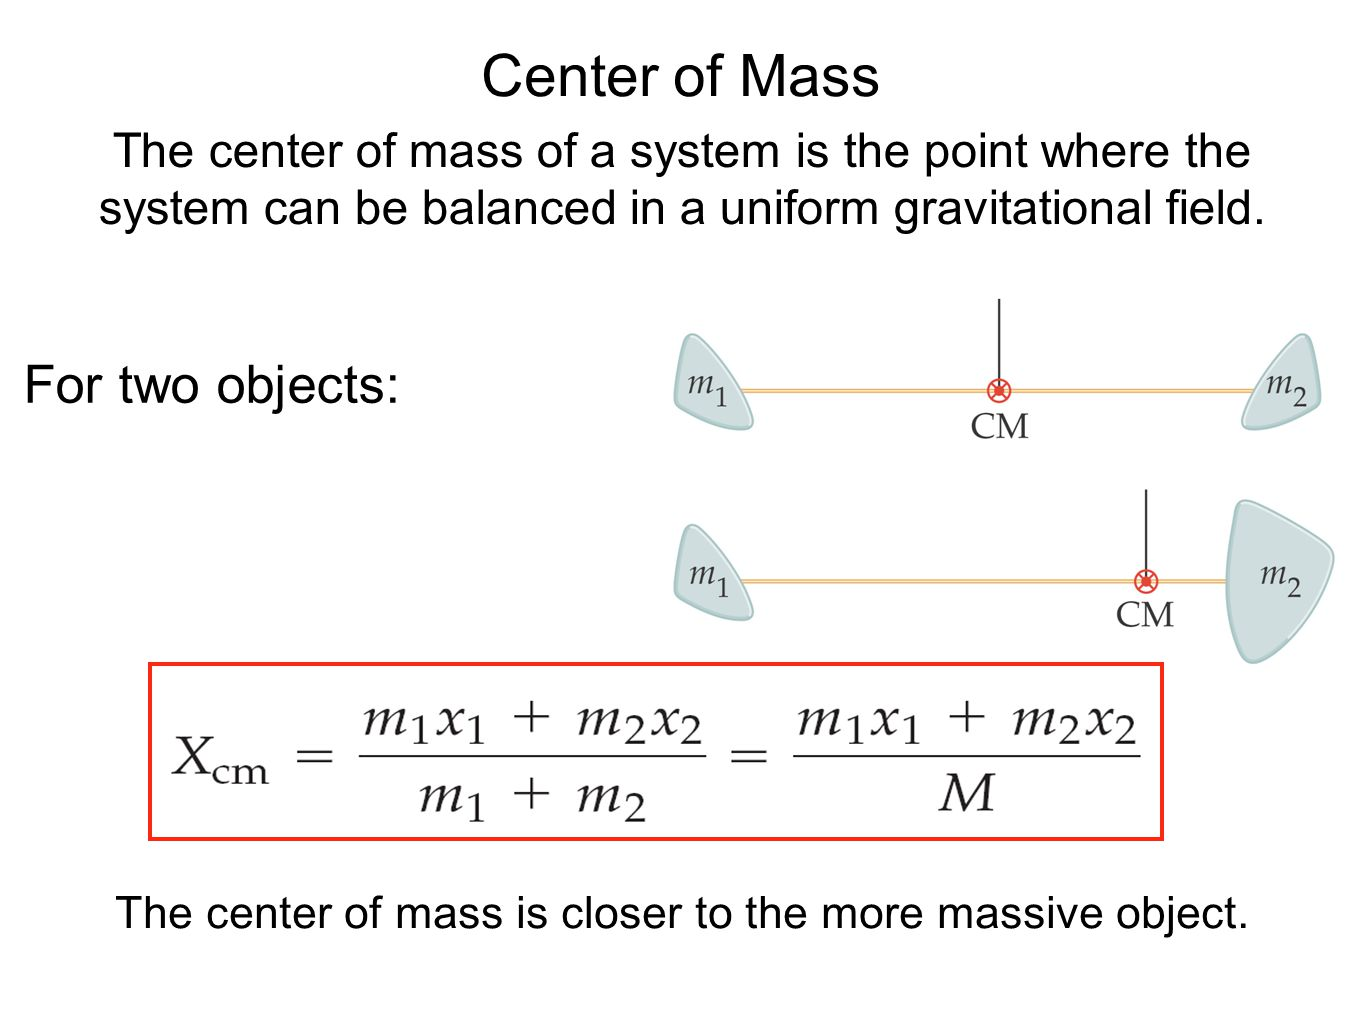 The center of mass is closer to the more massive object.